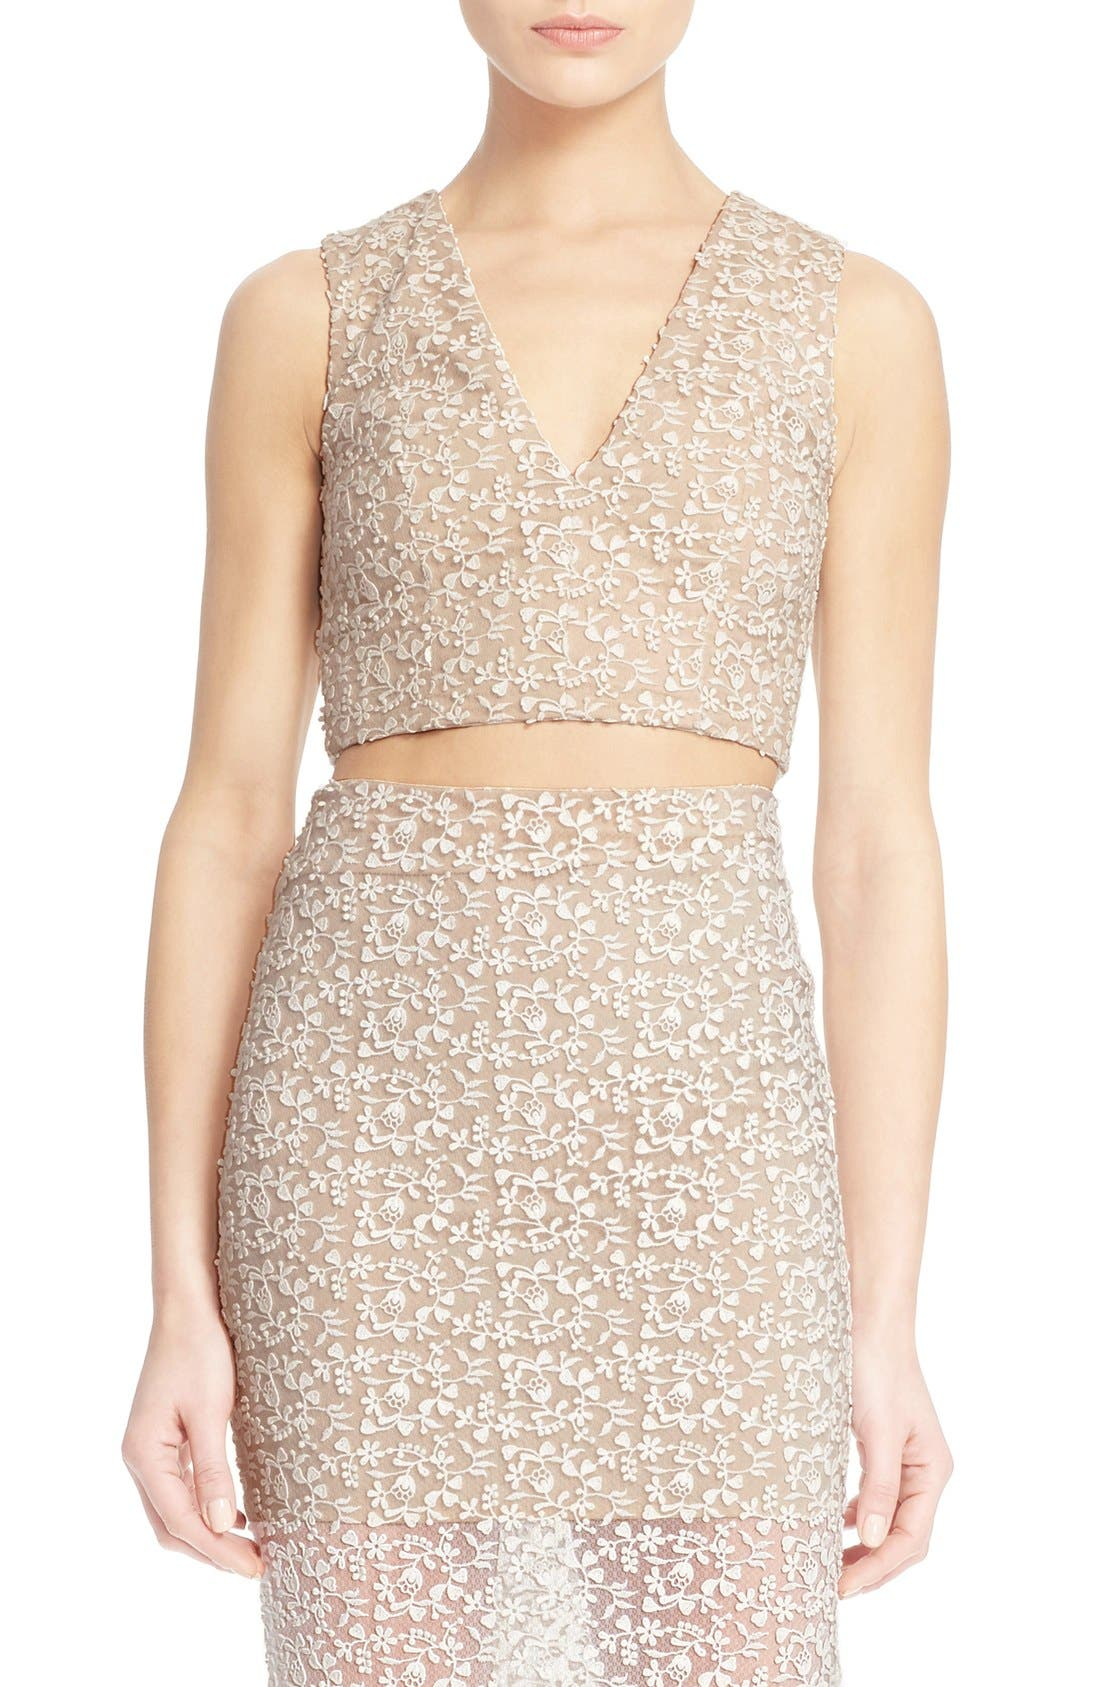 Main Image - Alice + Olivia 'Jaya' Illusion Lace V-Neck Crop Top